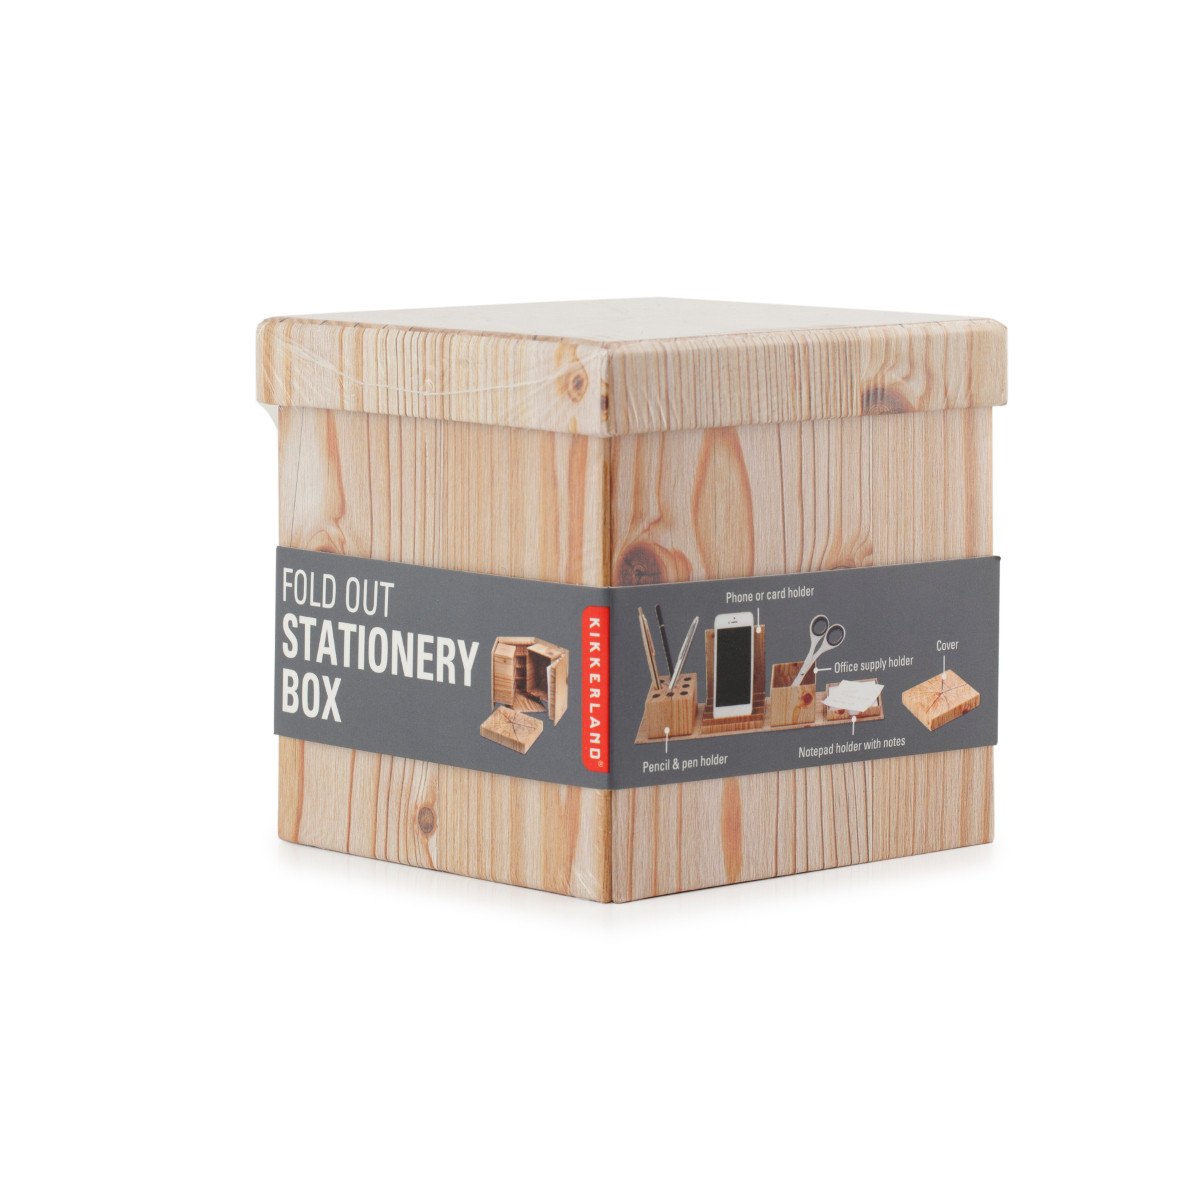 Fold Out Stationery Box - Verpackung